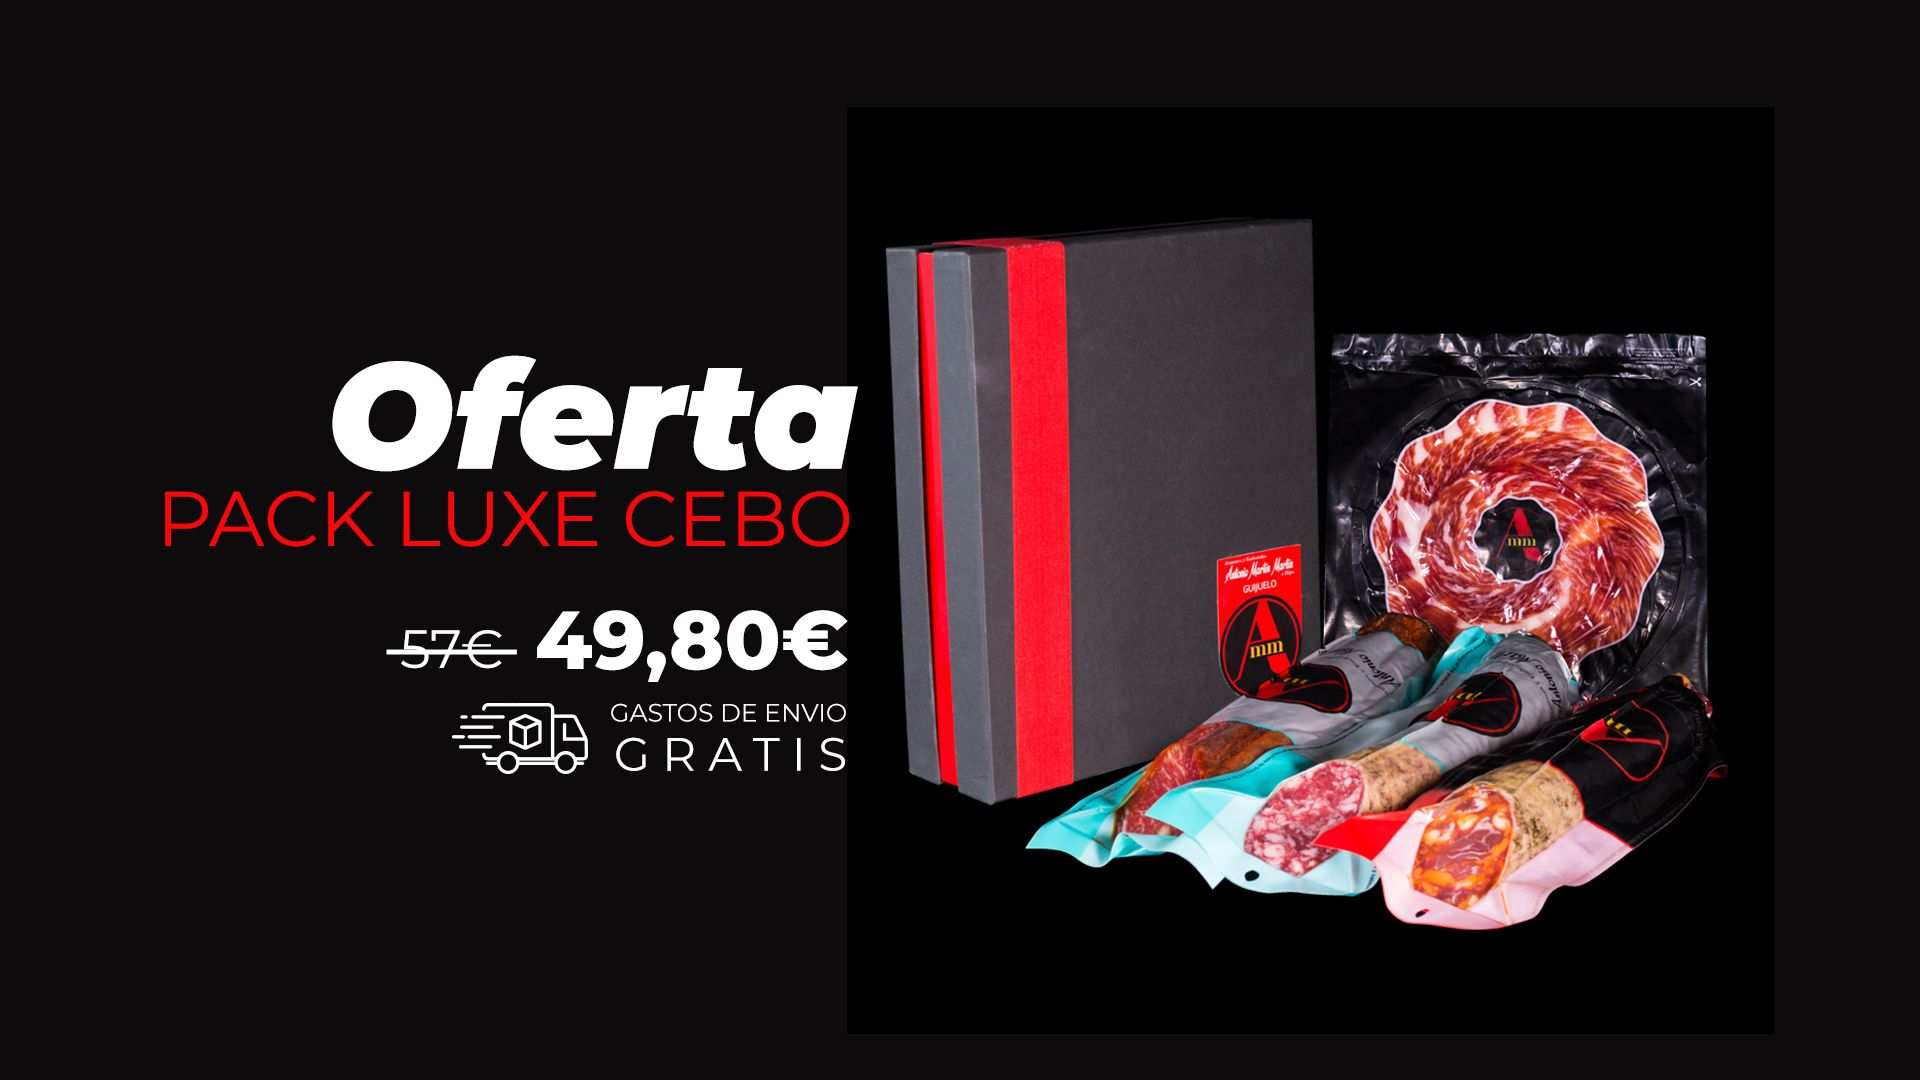 Oferta Pack Luxe Cebo